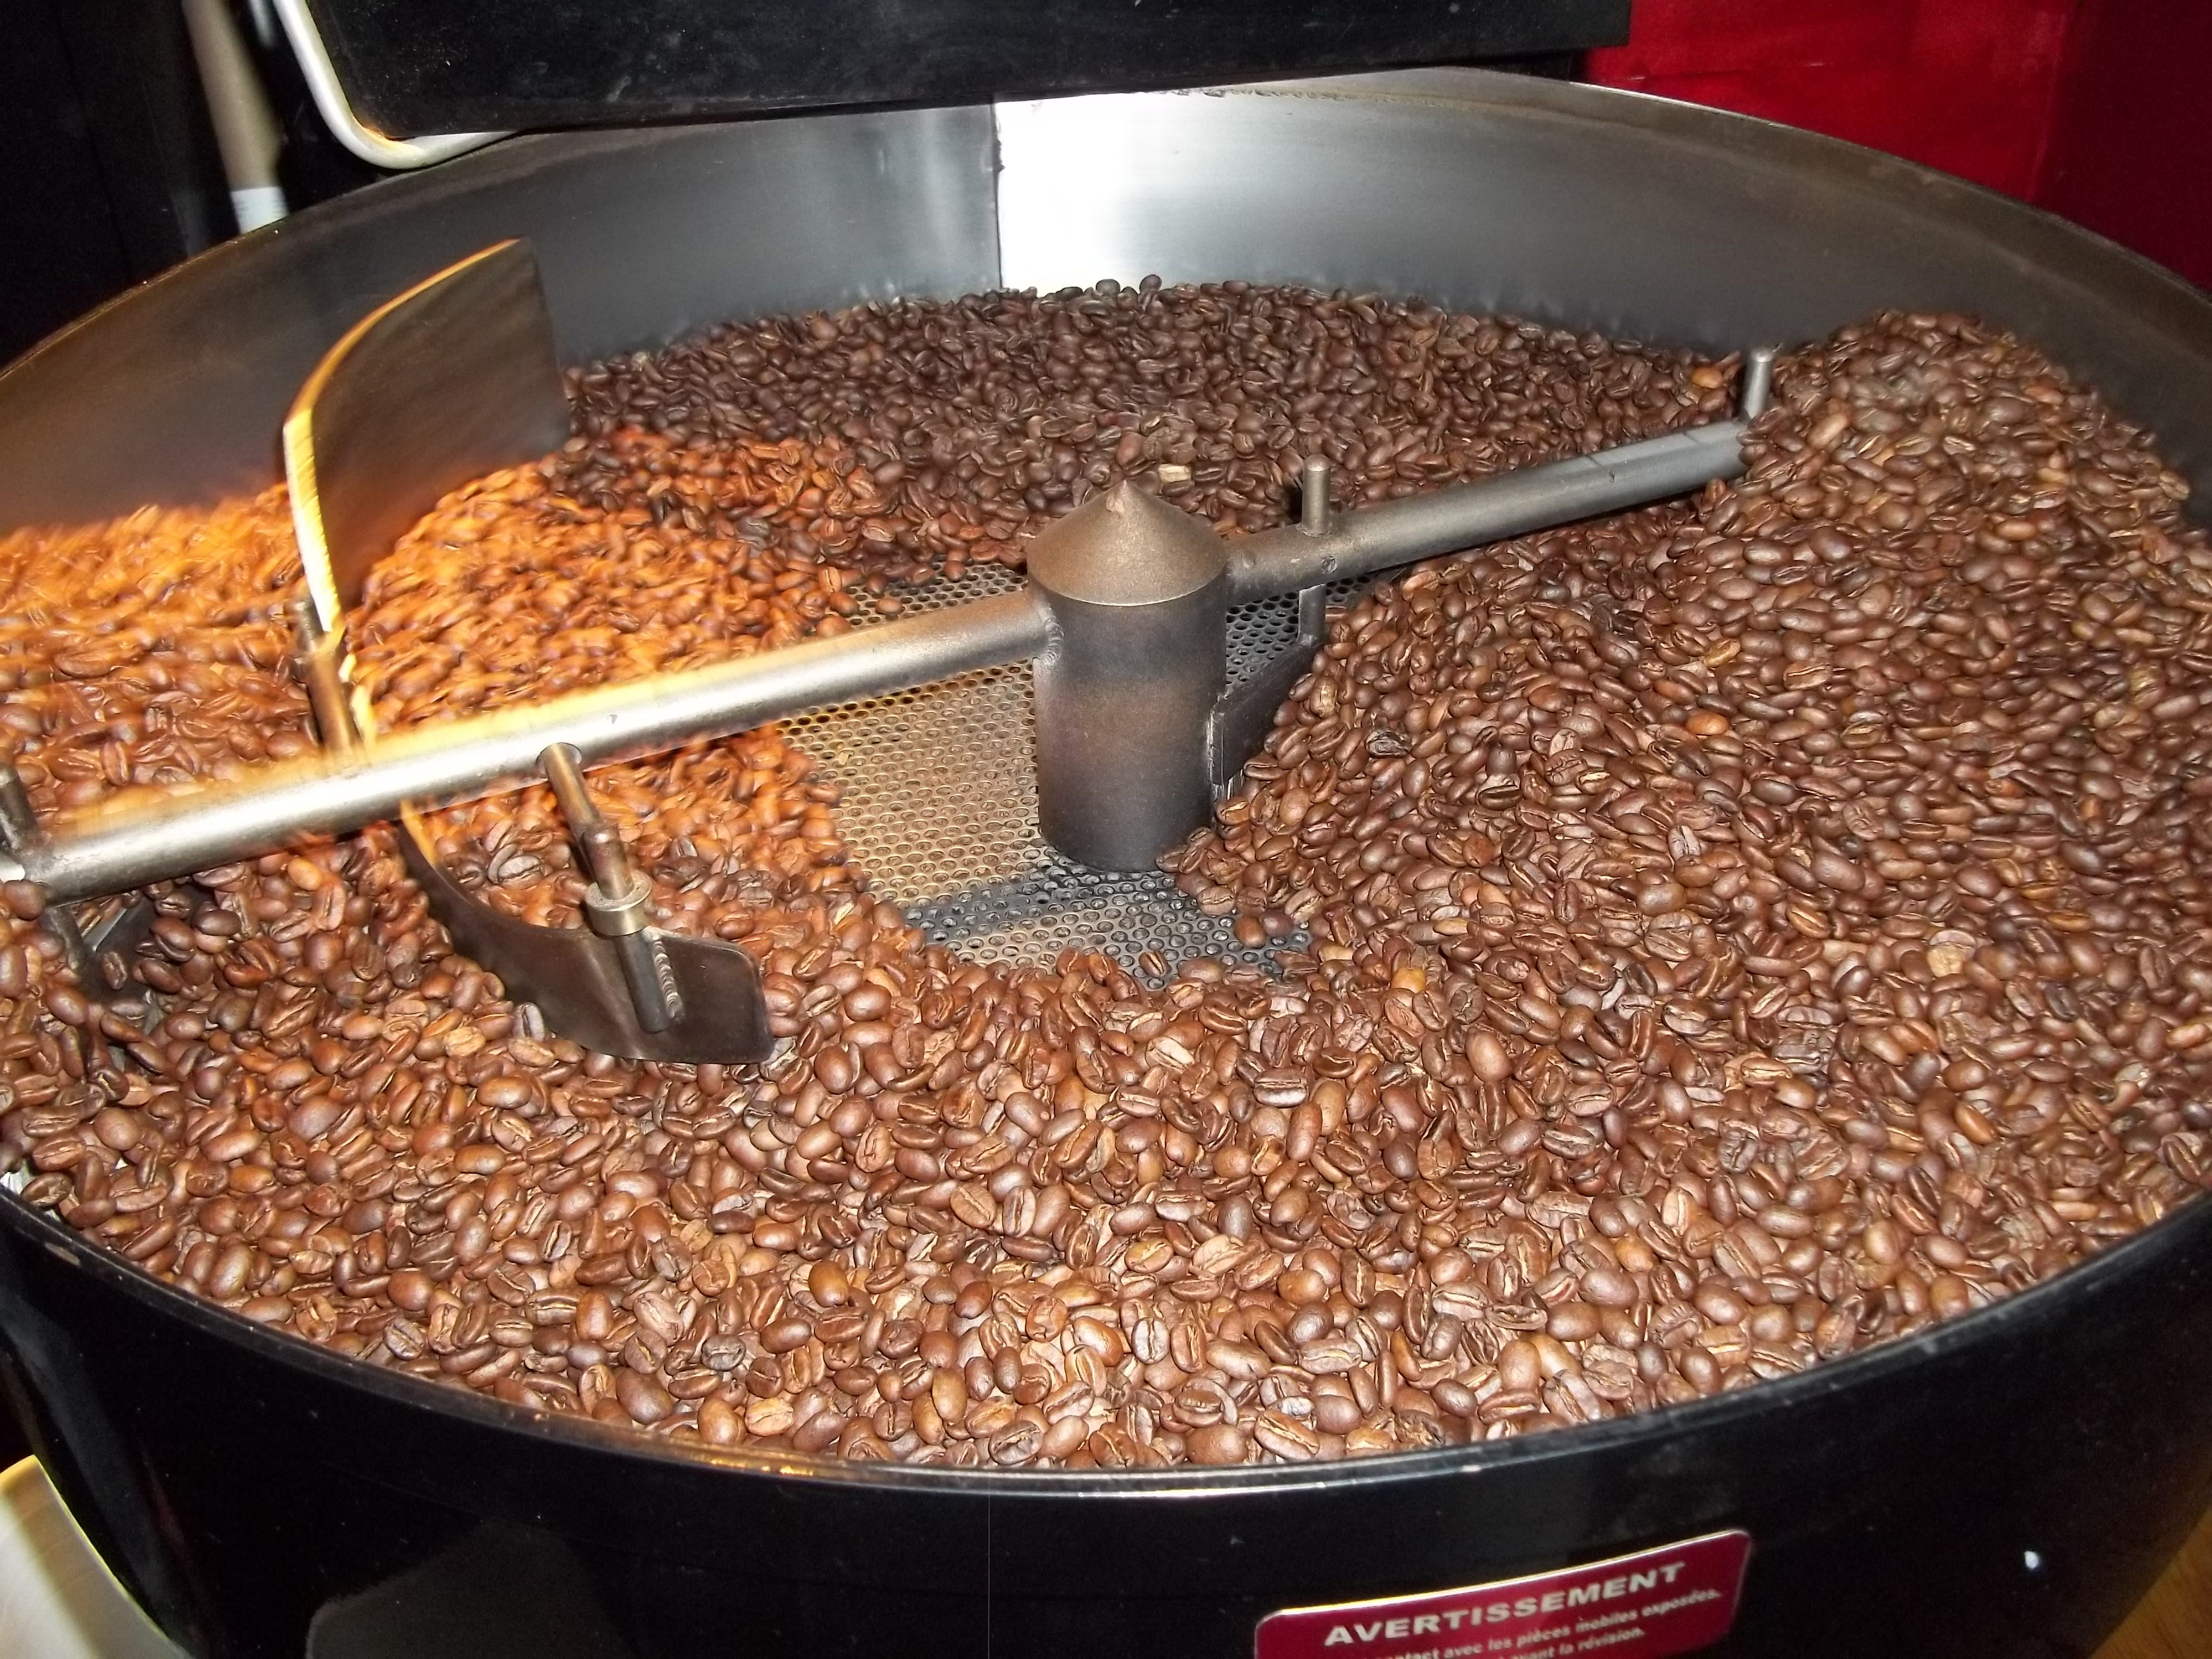 Green coffee beans have been roasted and are now cooling